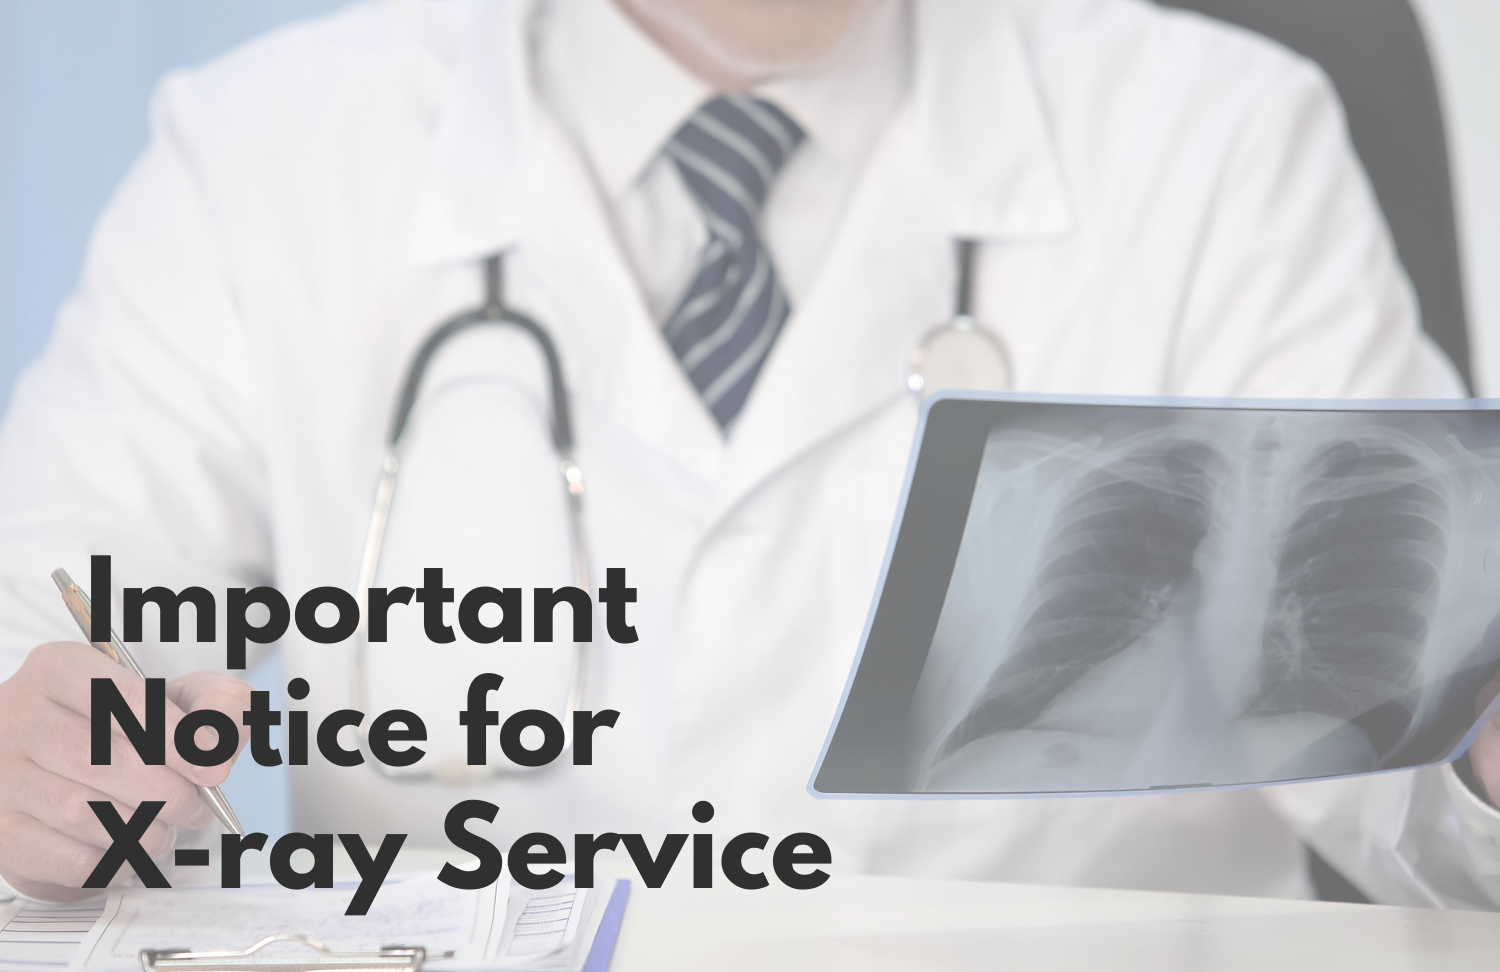 Updates on X-ray Services